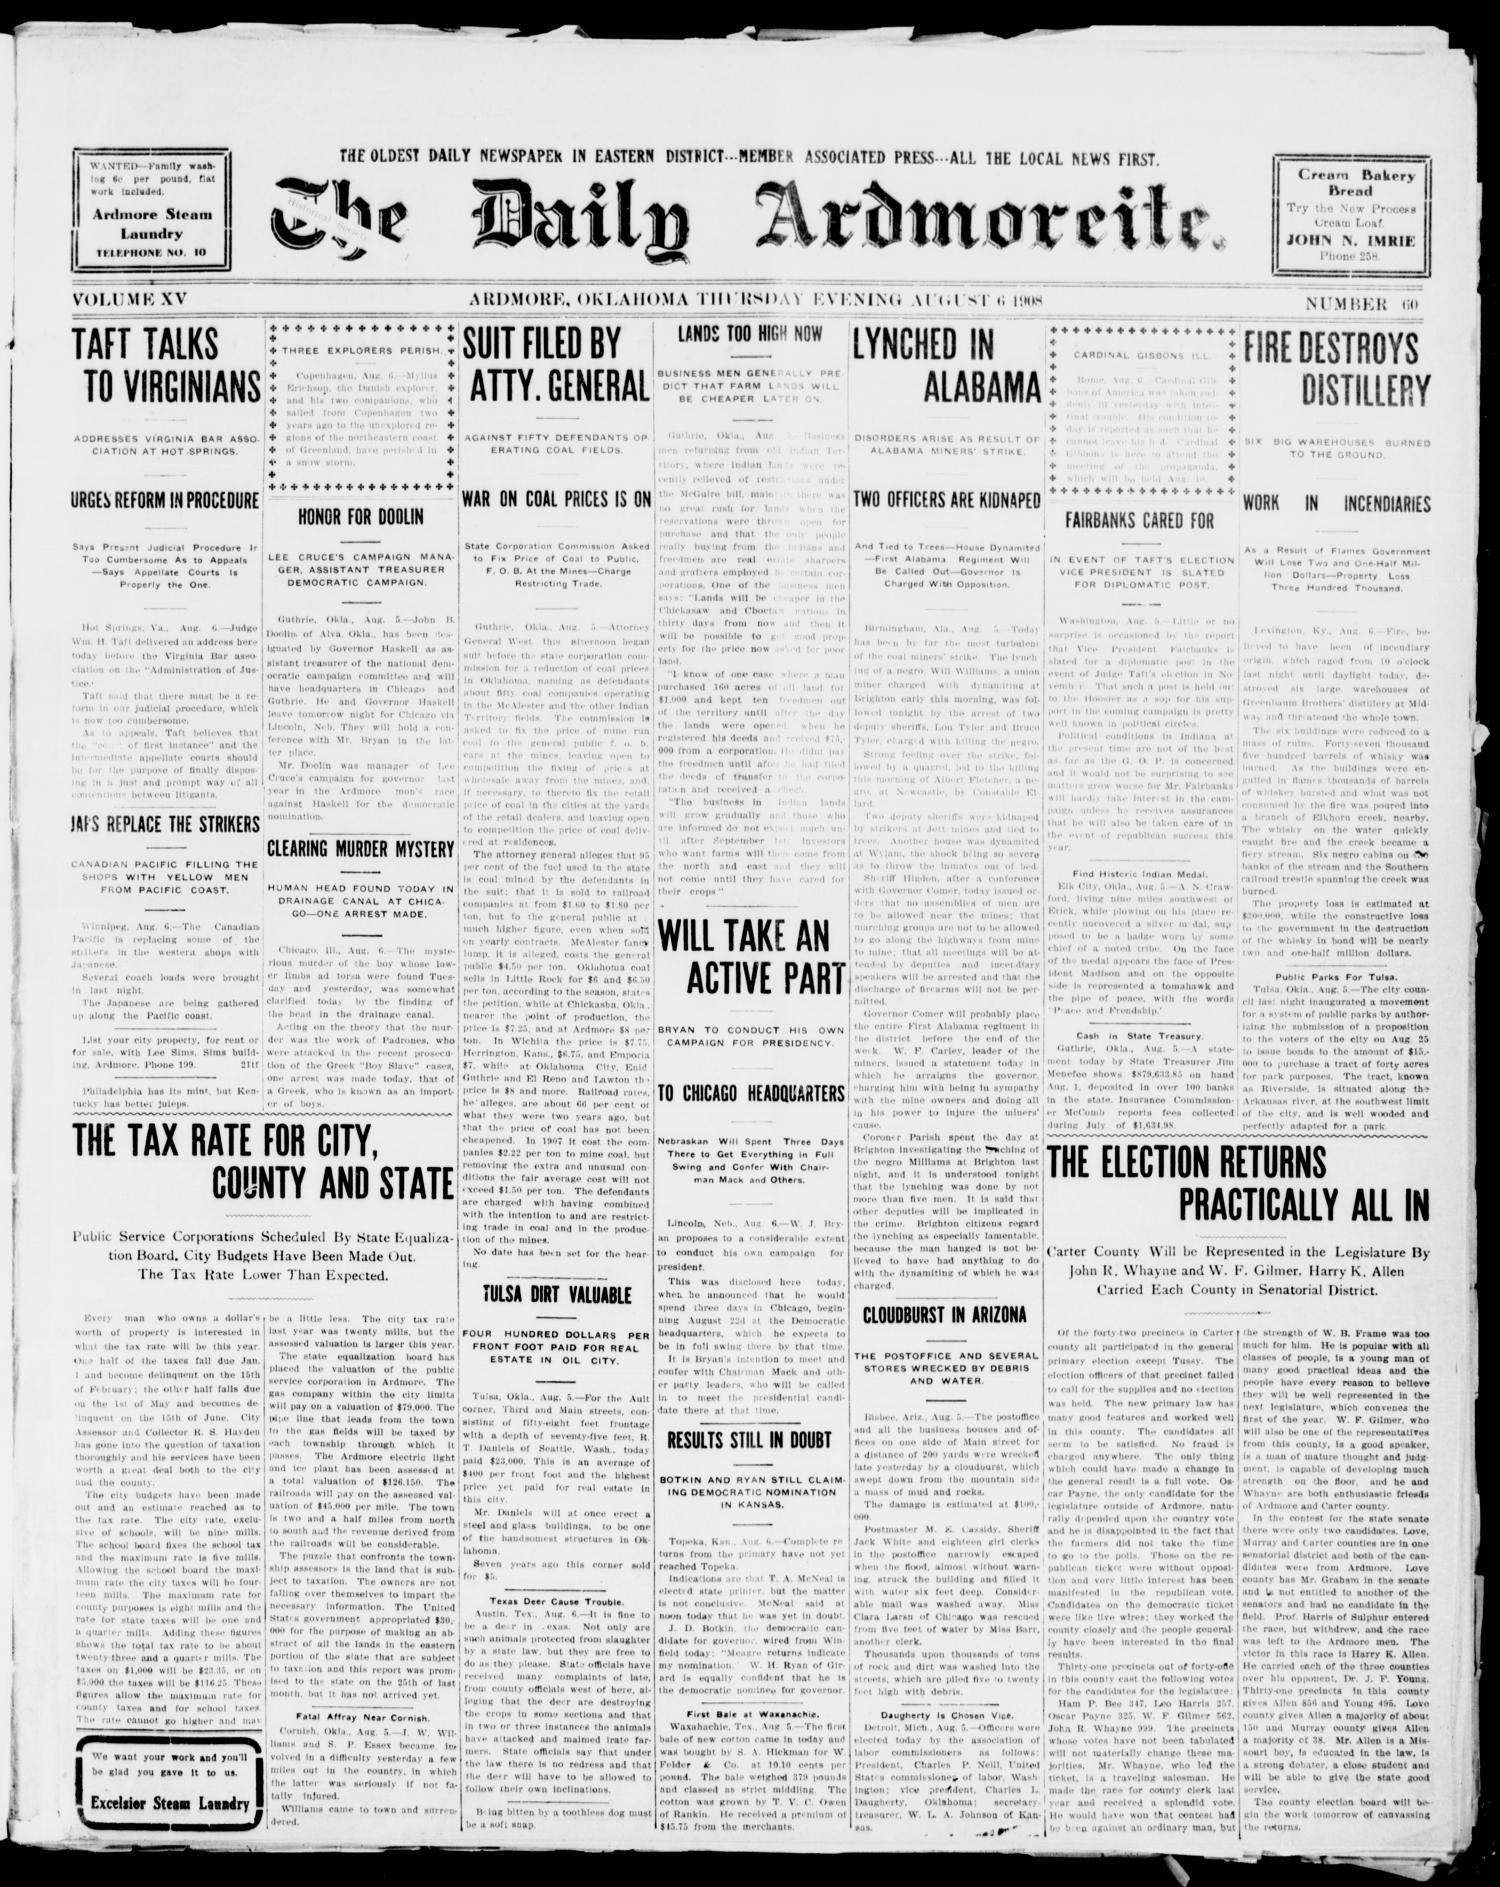 The Daily Ardmoreite. (Ardmore, Okla.), Vol. 15, No. 60, Ed. 1, Thursday, August 6, 1908                                                                                                      [Sequence #]: 1 of 8